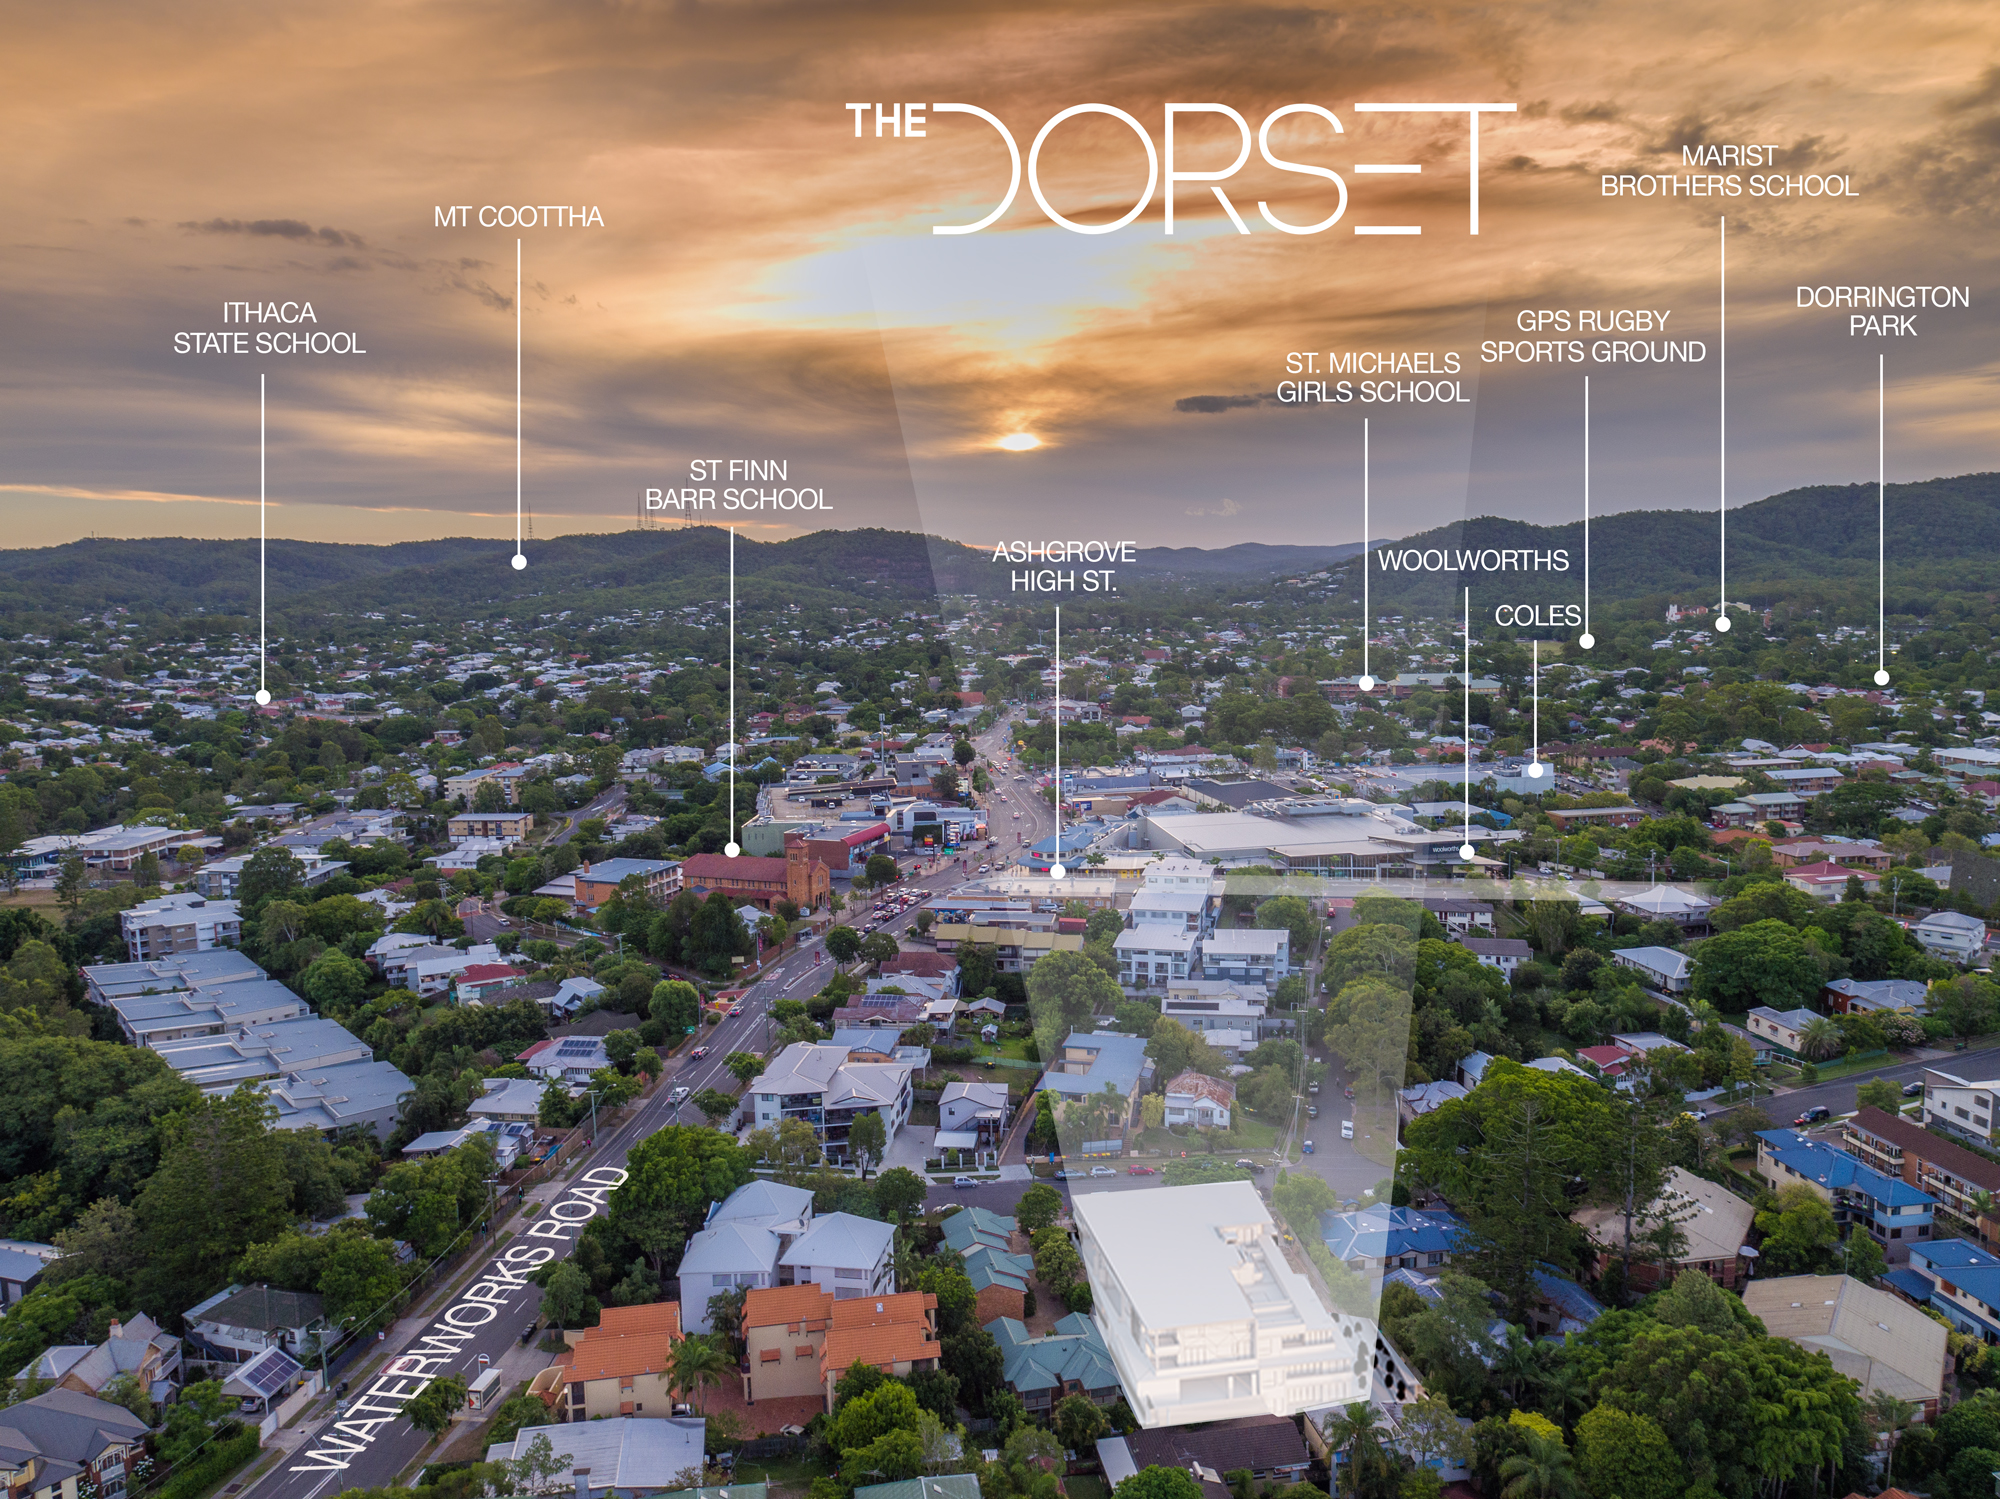 Aerial Photo of The Dorset with Mt Coot-tha in the background